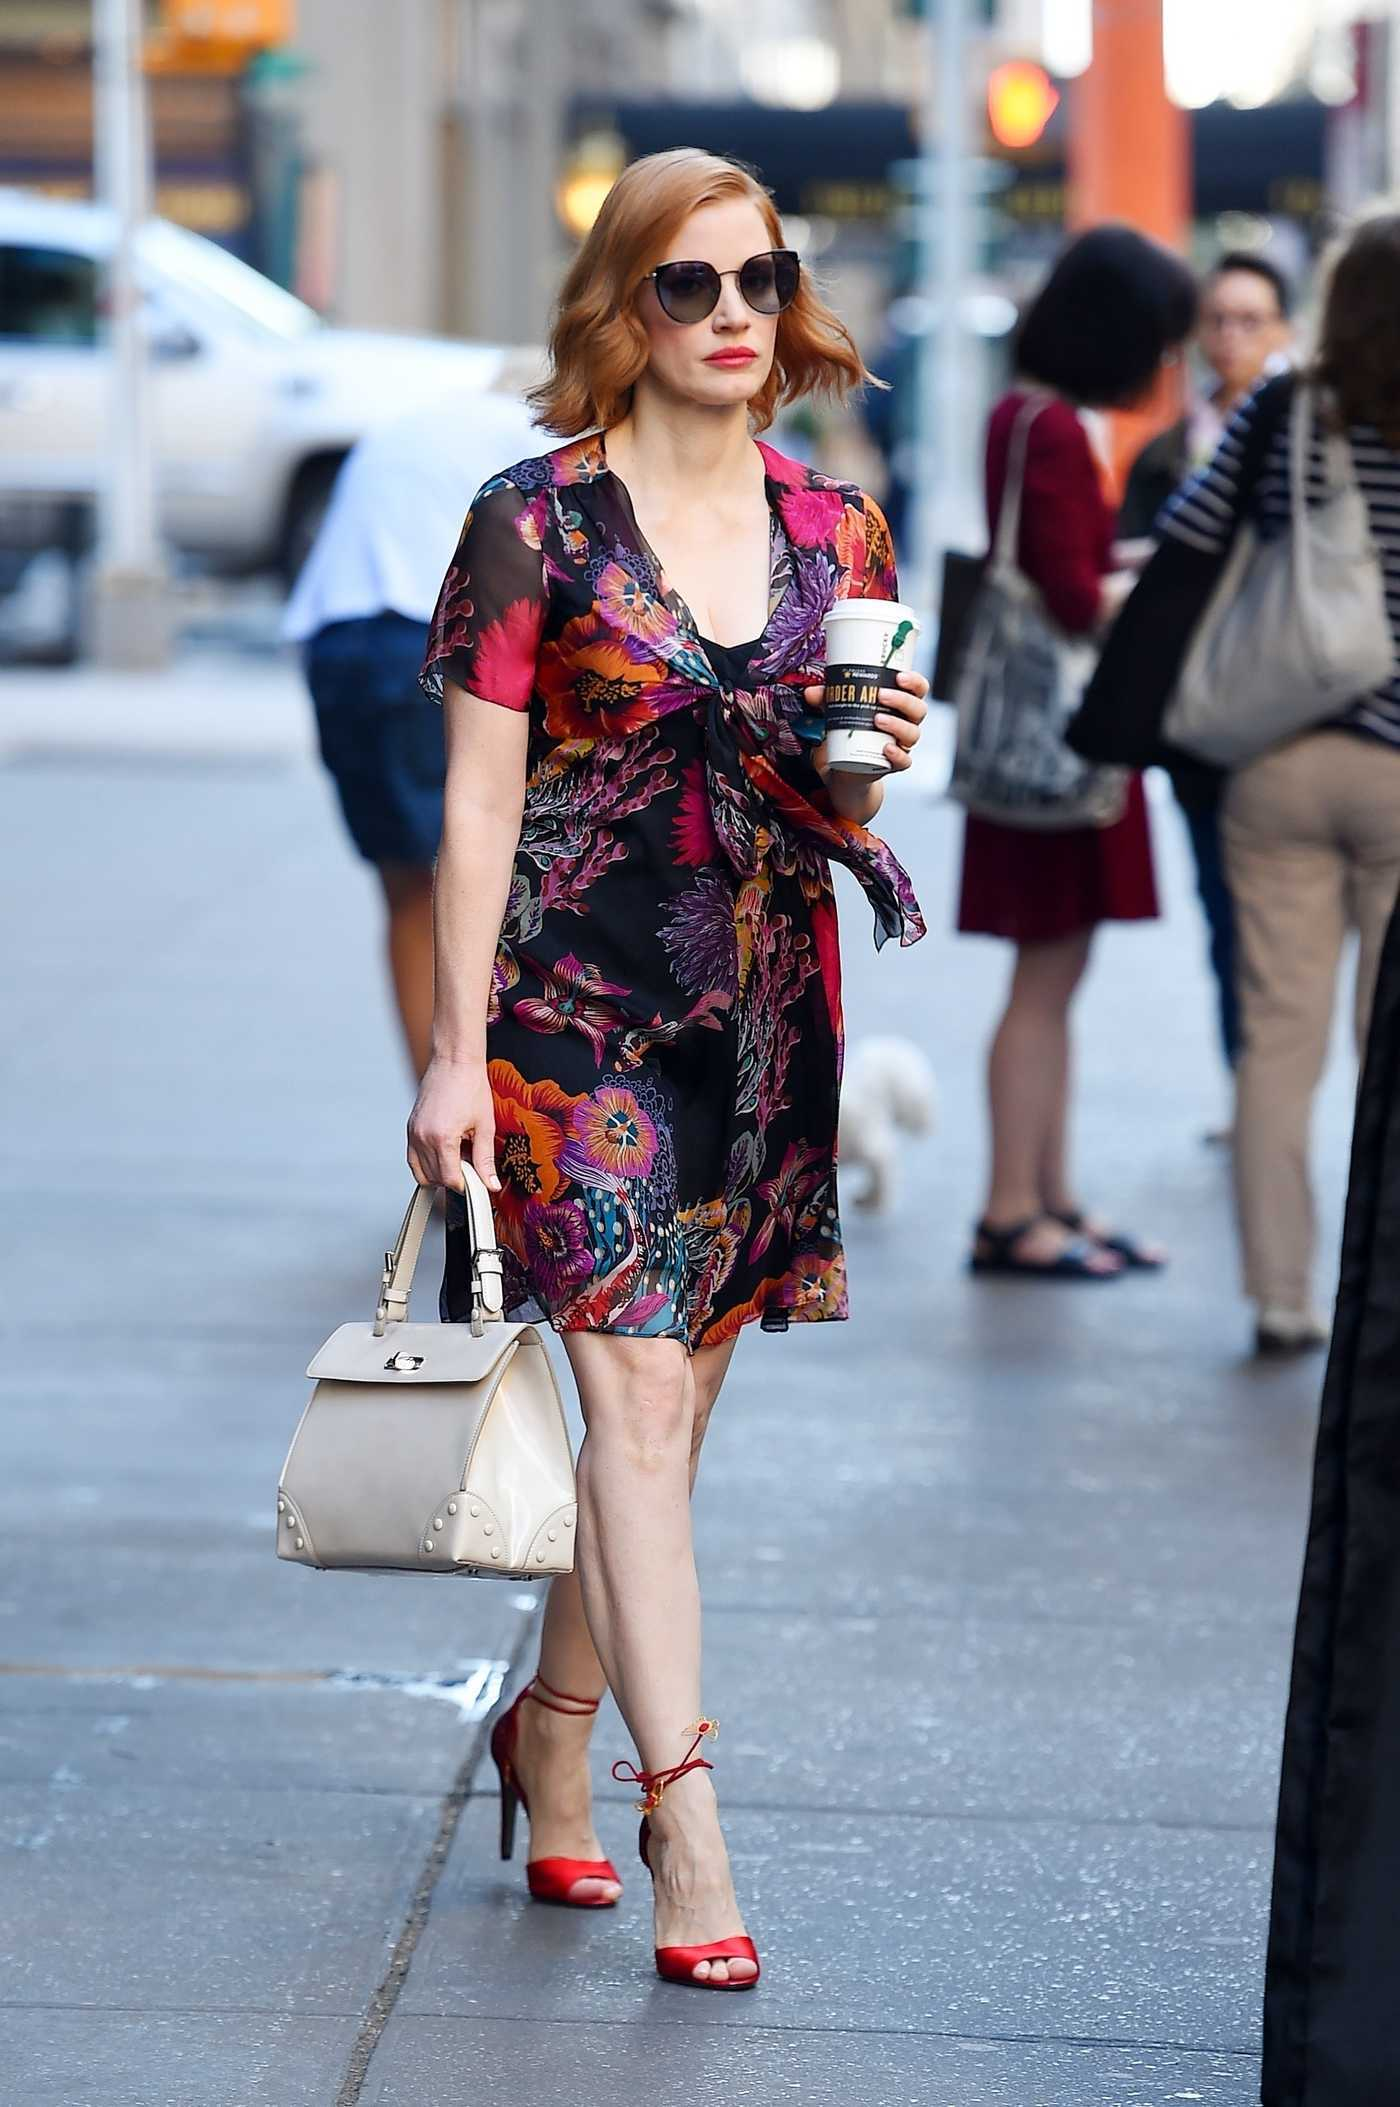 Jessica Chastain Heads Out in Manhattan, New York 06/26/2018